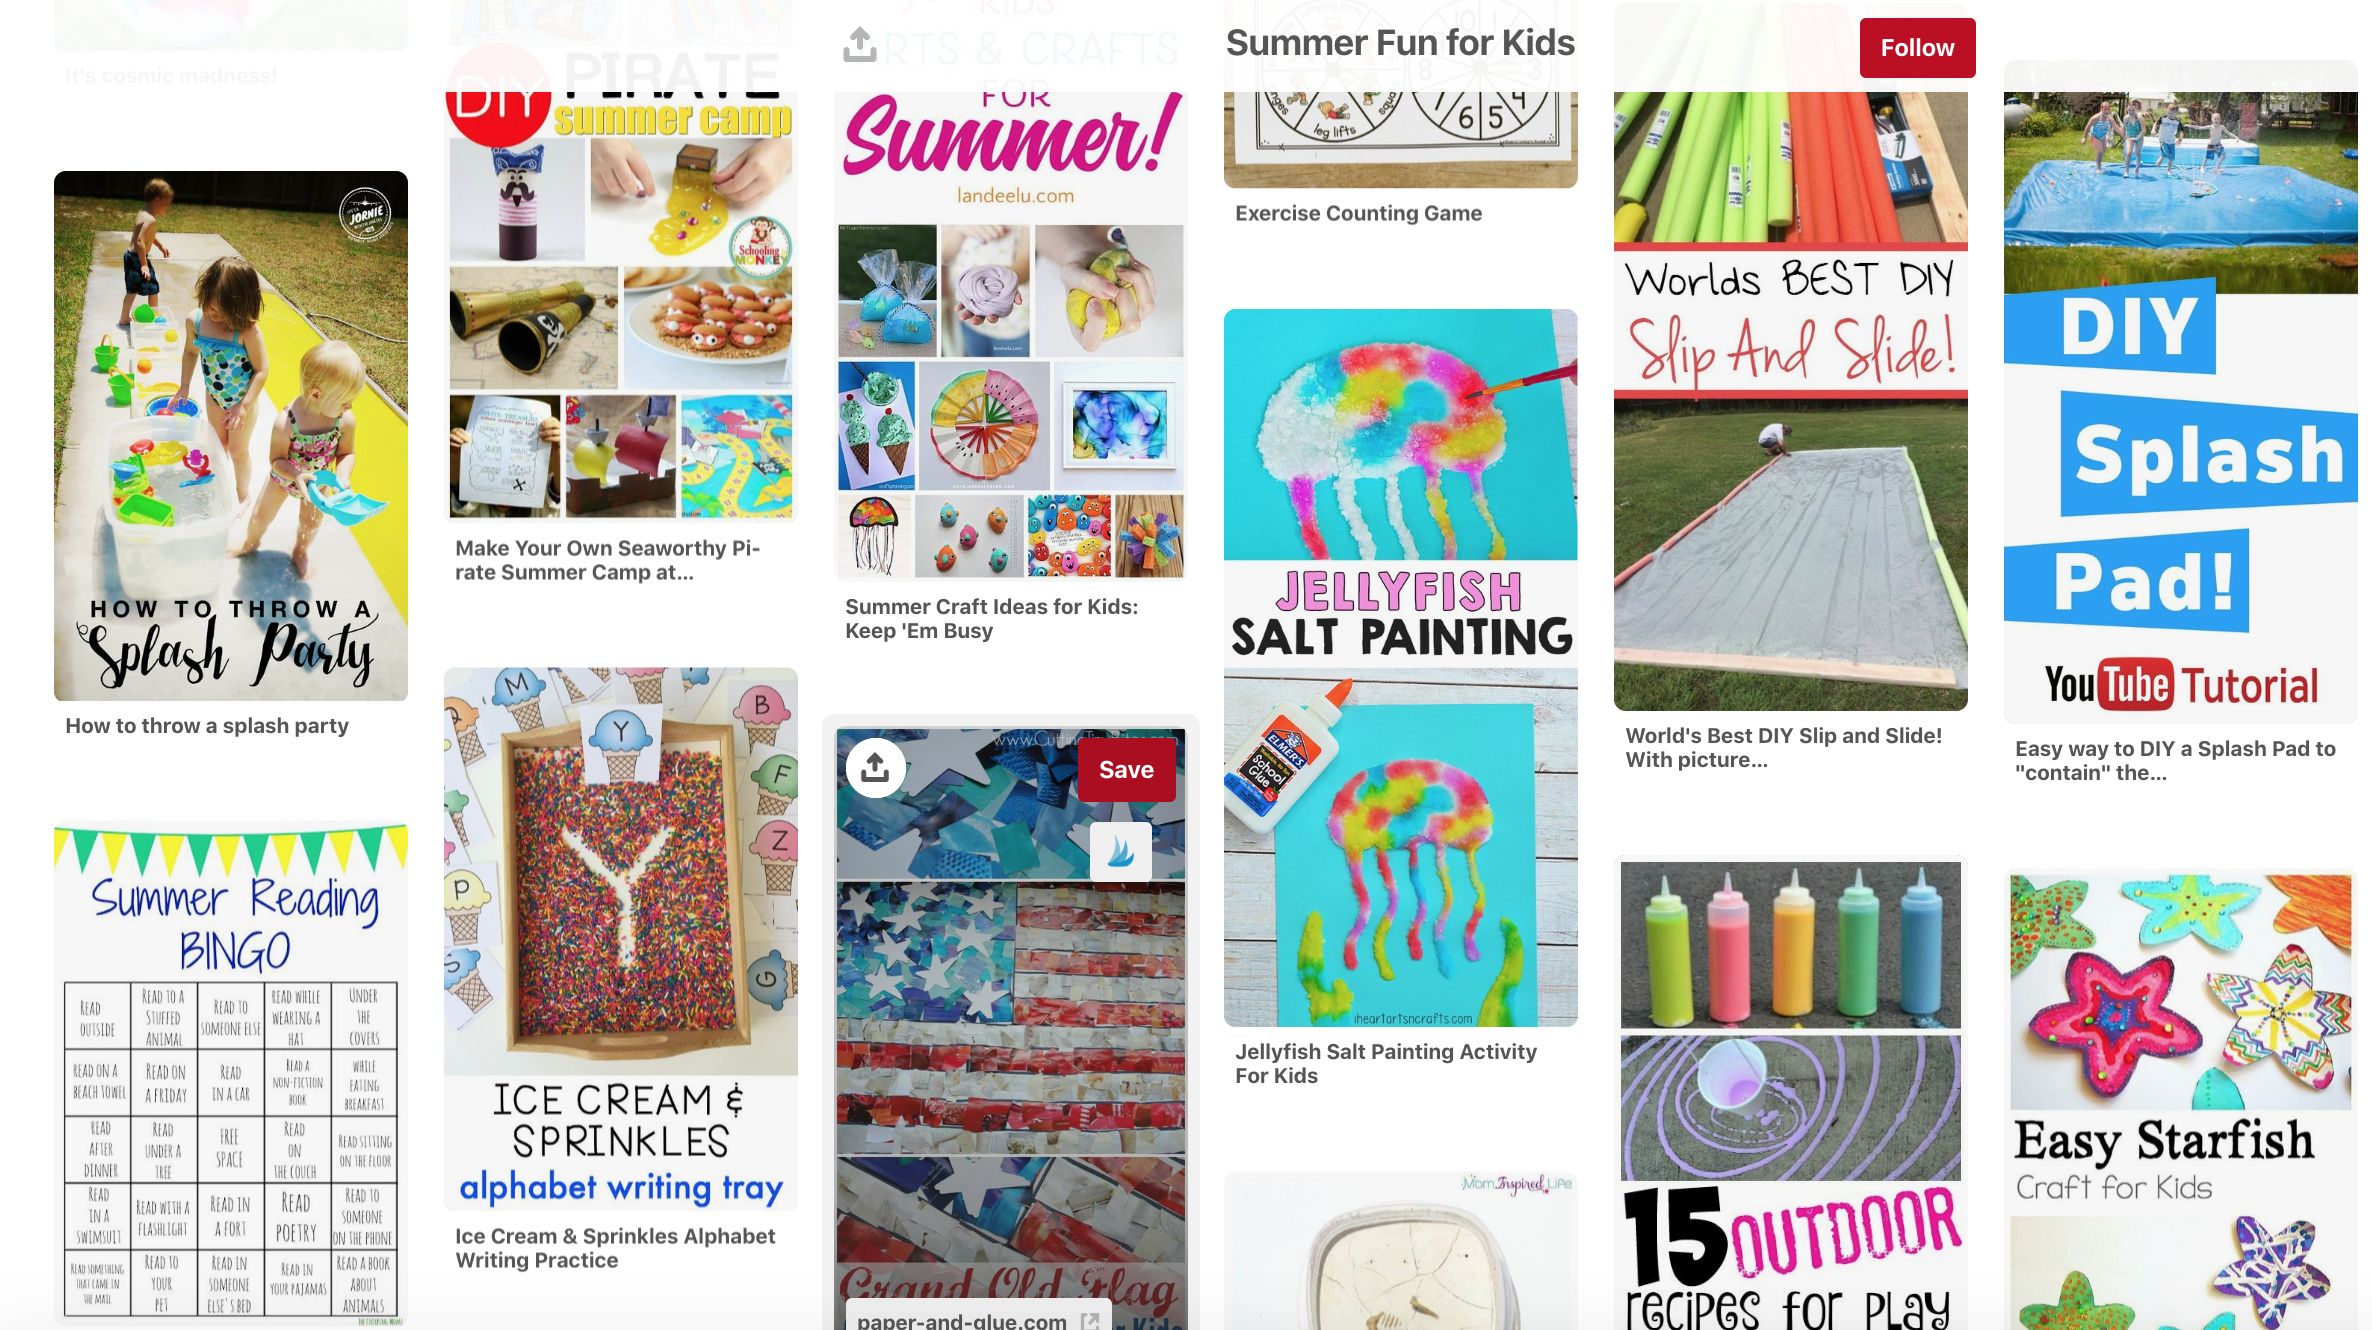 Fun ideas that you can do over the summer! This board has a lot of outside ideas and fun games for kids.